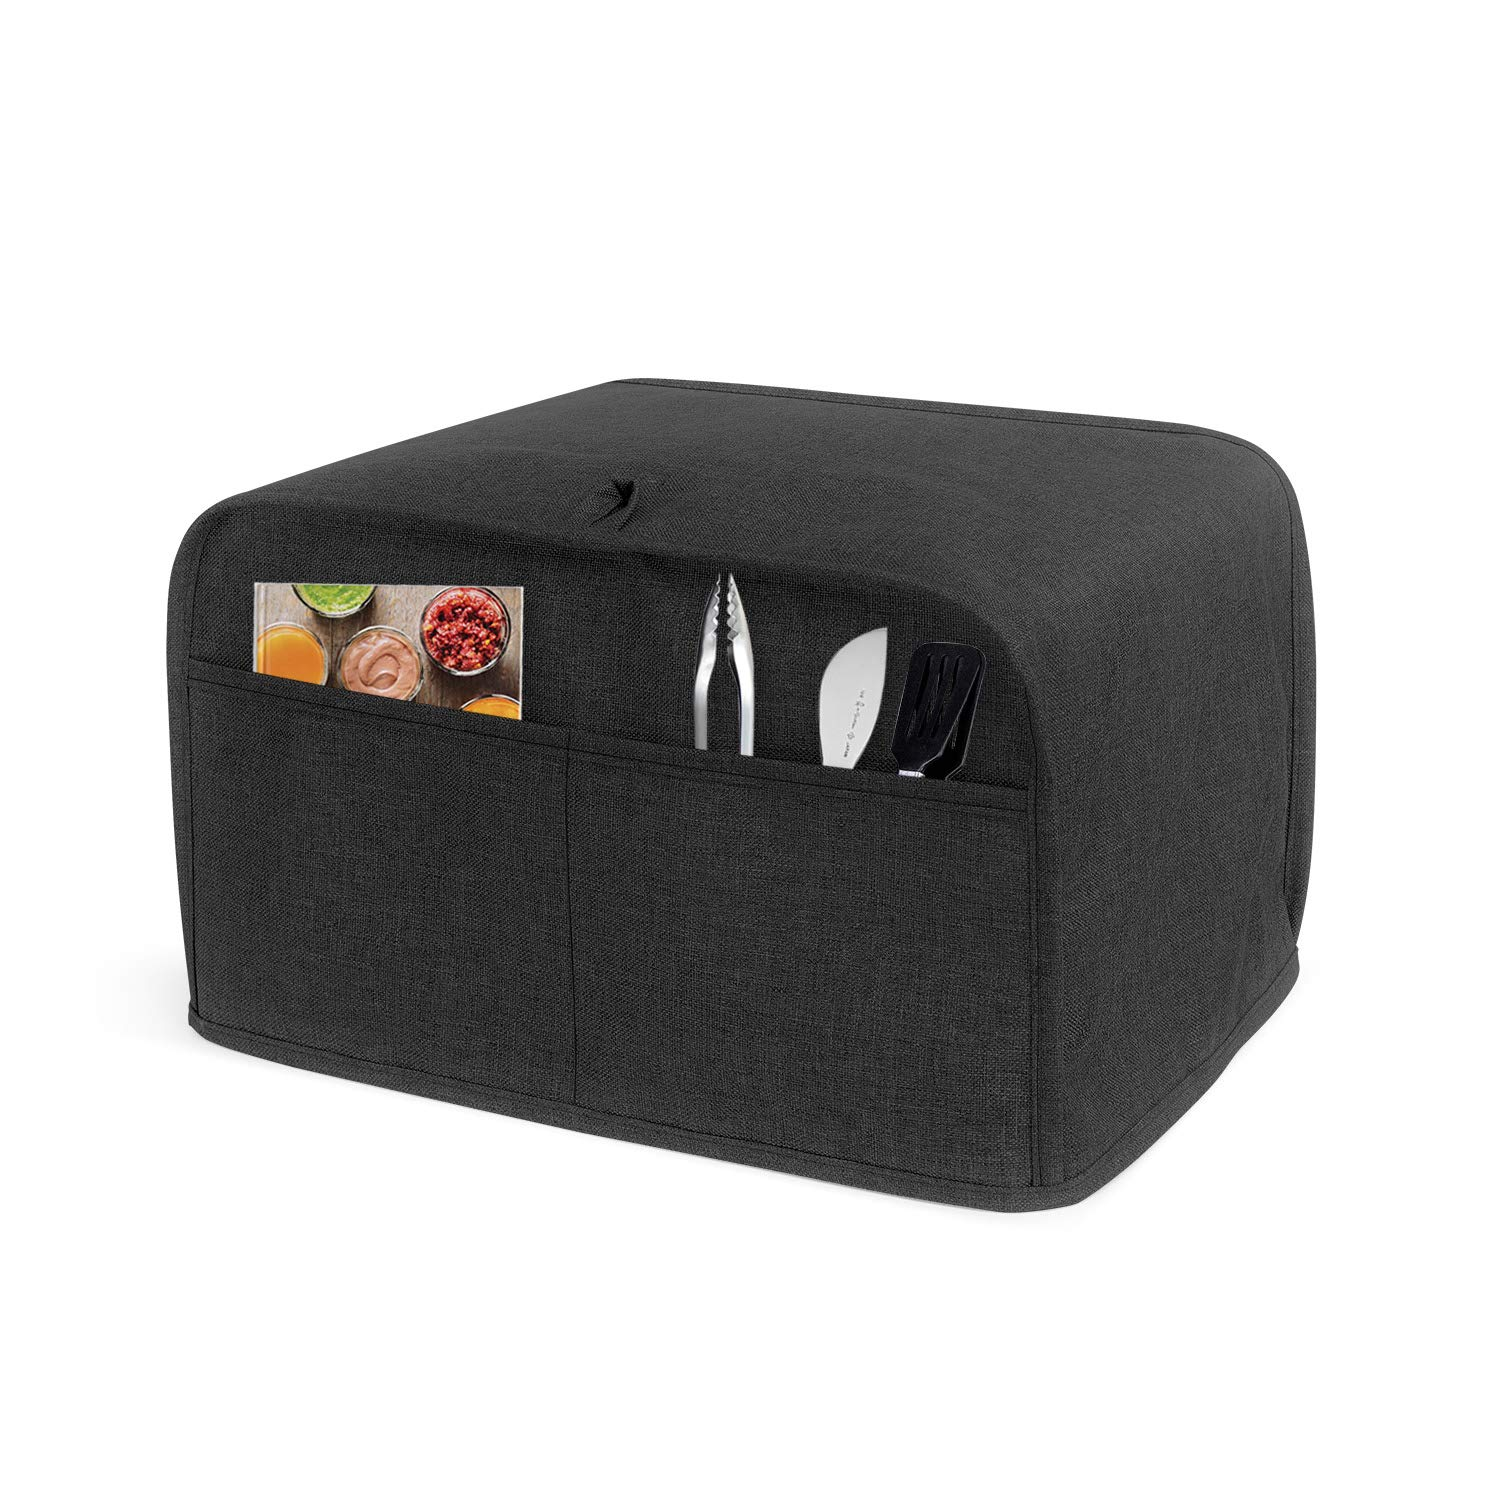 Luxja 2 Slice Toaster Cover (11 x 7.5 x 8 inches), Toaster Cover with 2 Pockets (Fits for Most Major 2 Slice Toasters), Black